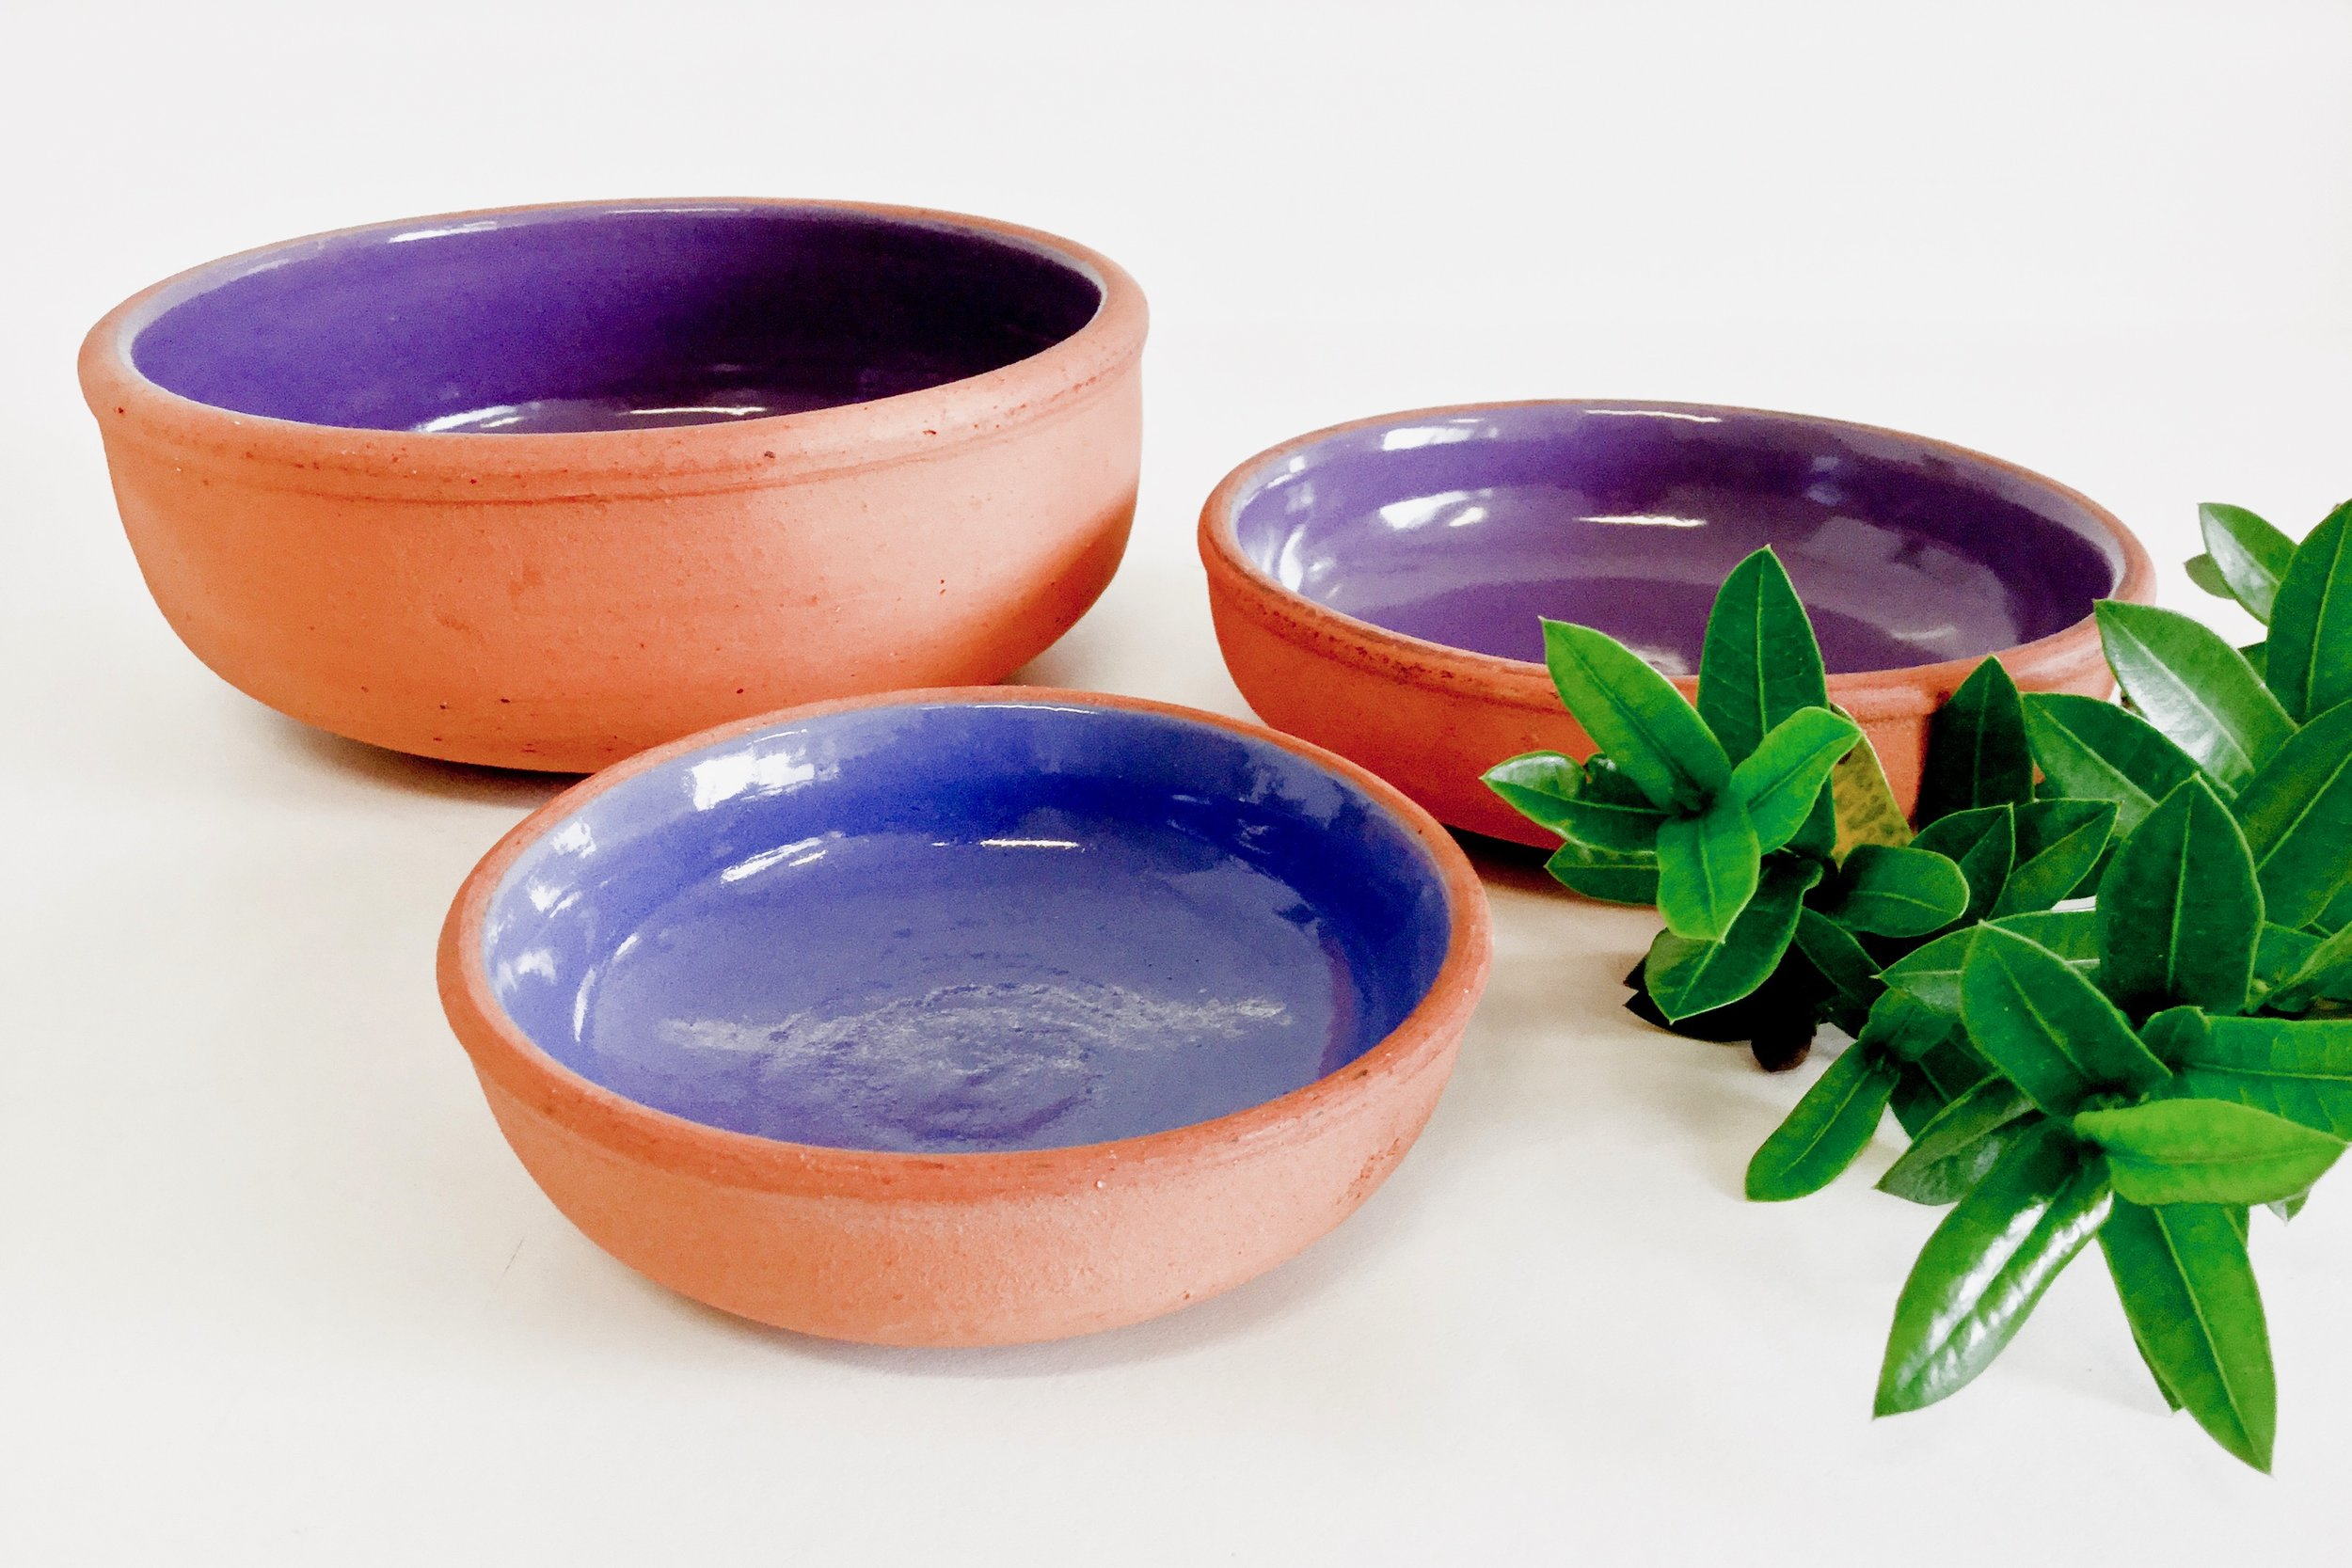 Mini red clay casseroles